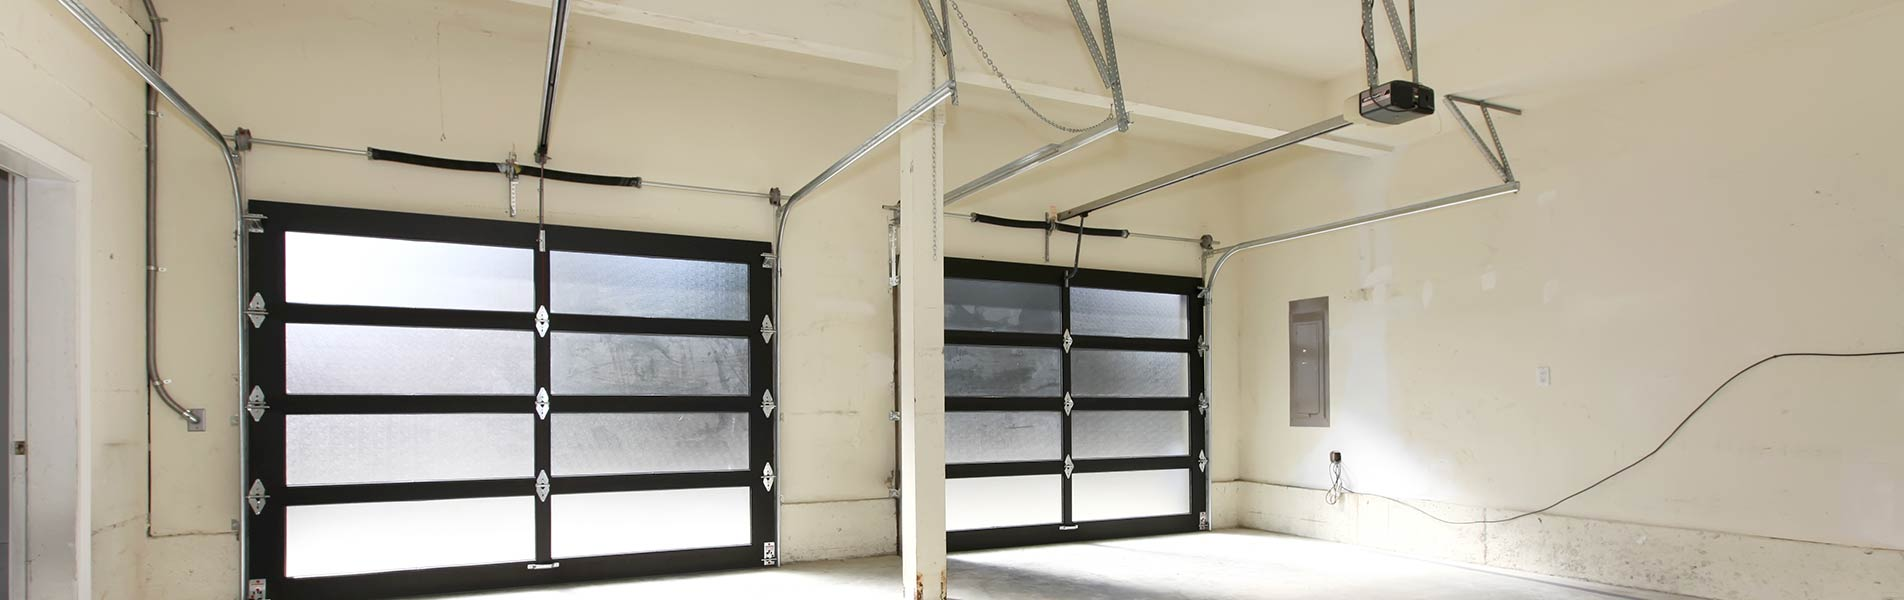 Eagle Garage Door Service Bronx, NY 347-329-1297